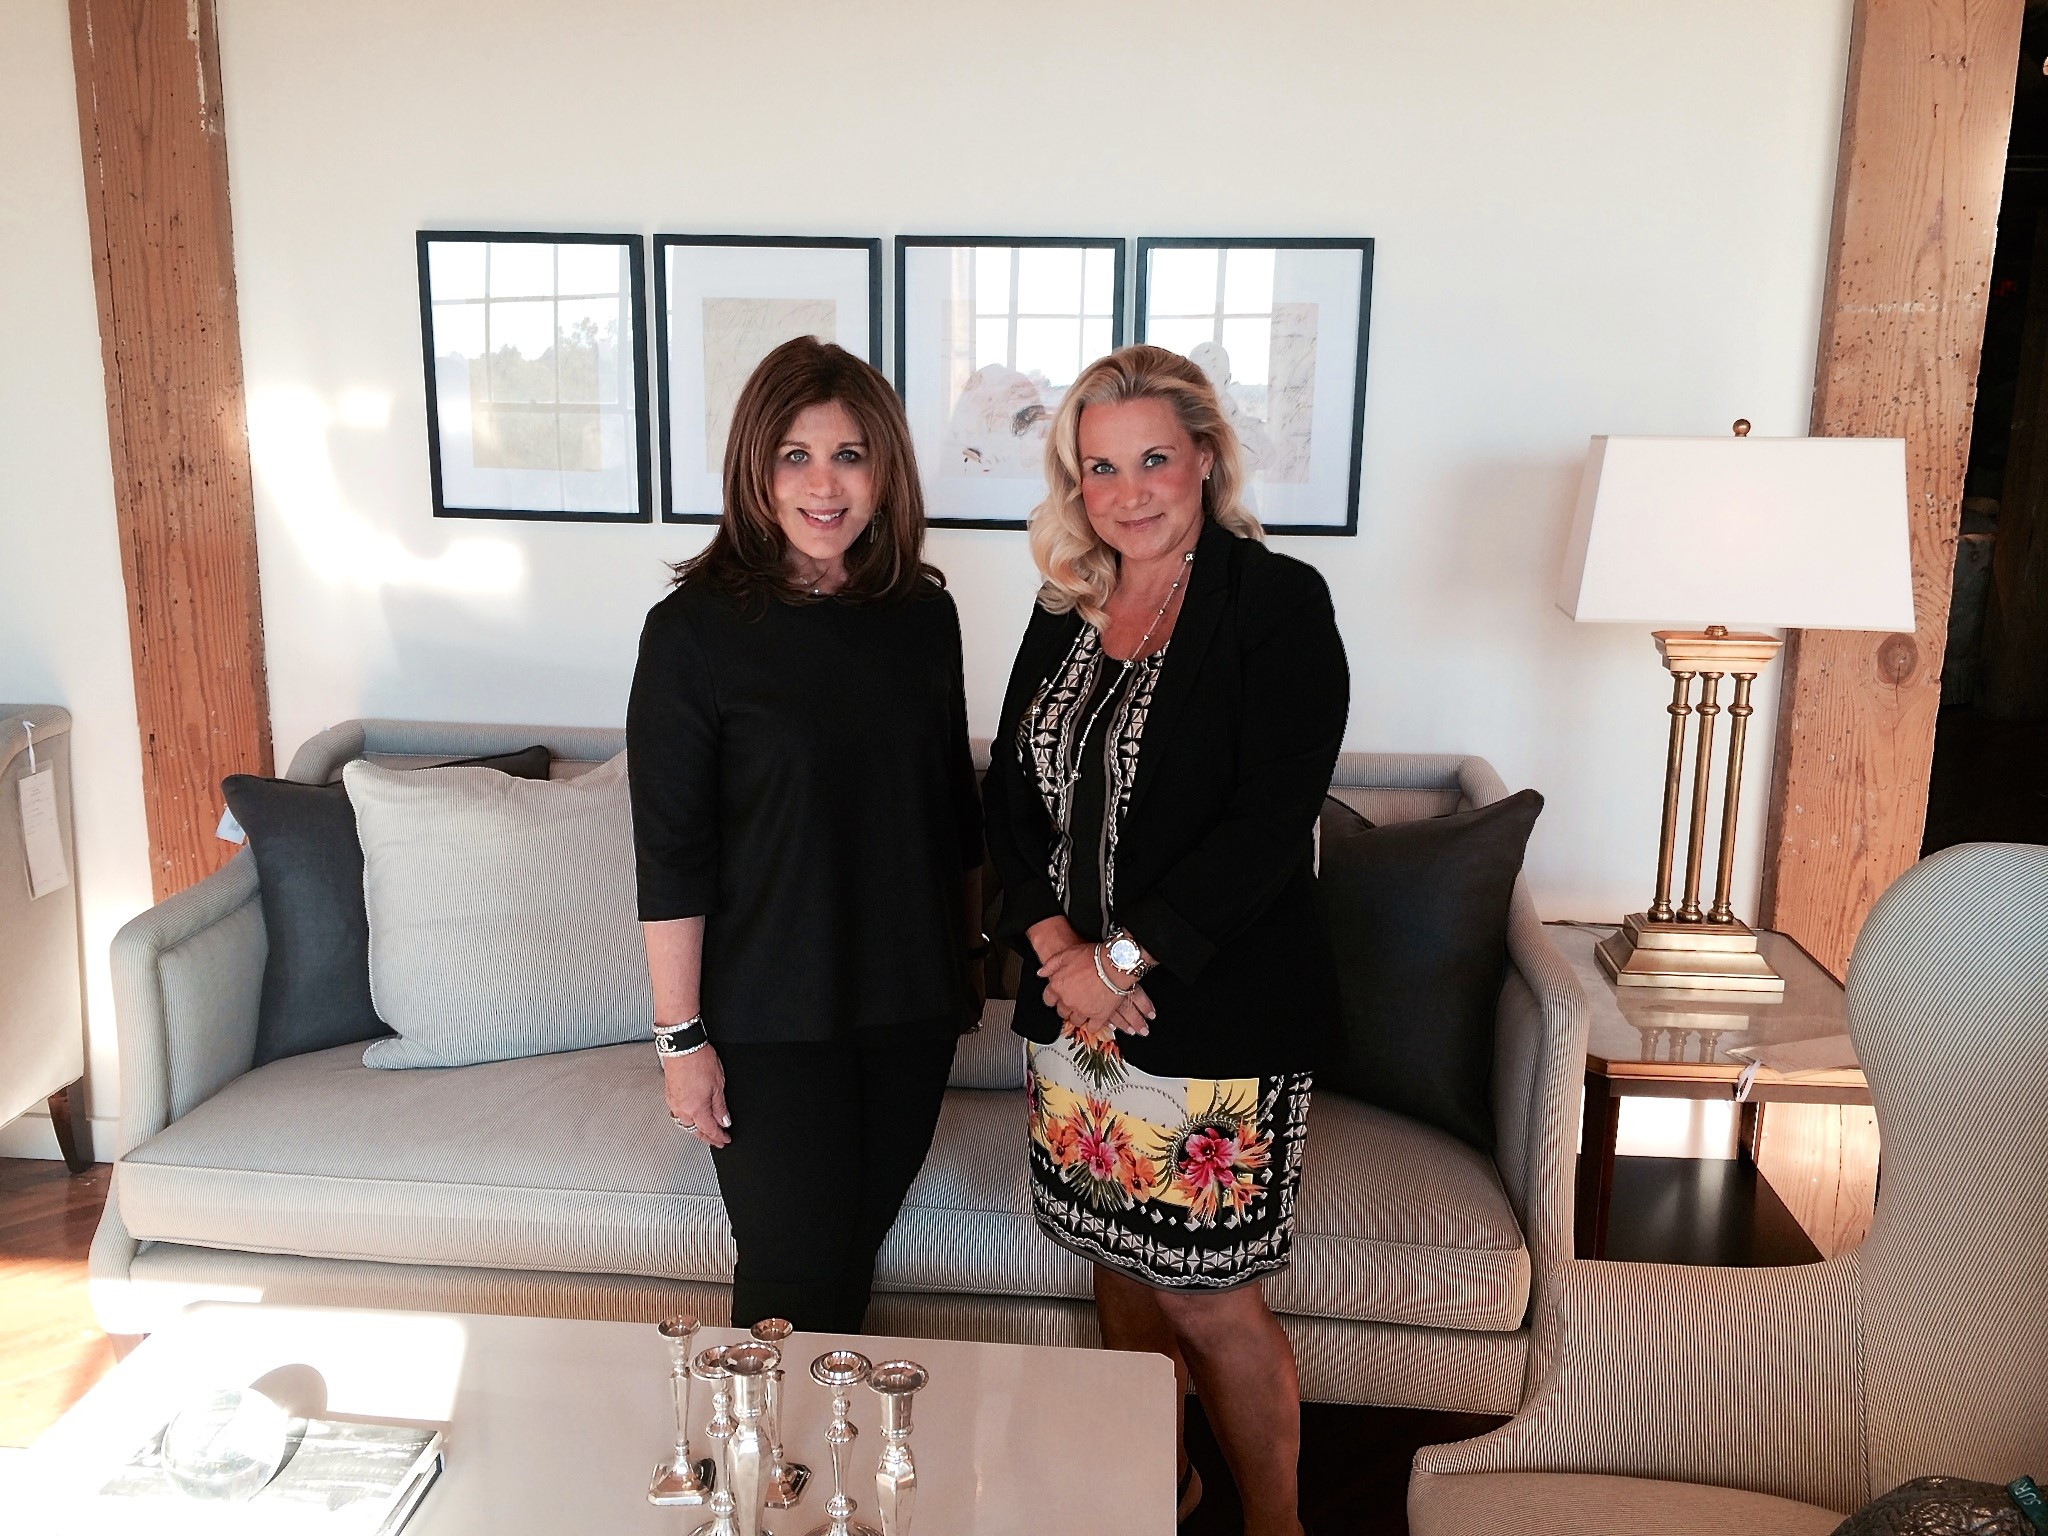 With Suzanne Kasler in her stunning new space featuring her fall collection at the Hickory Chair showroom in High Point.